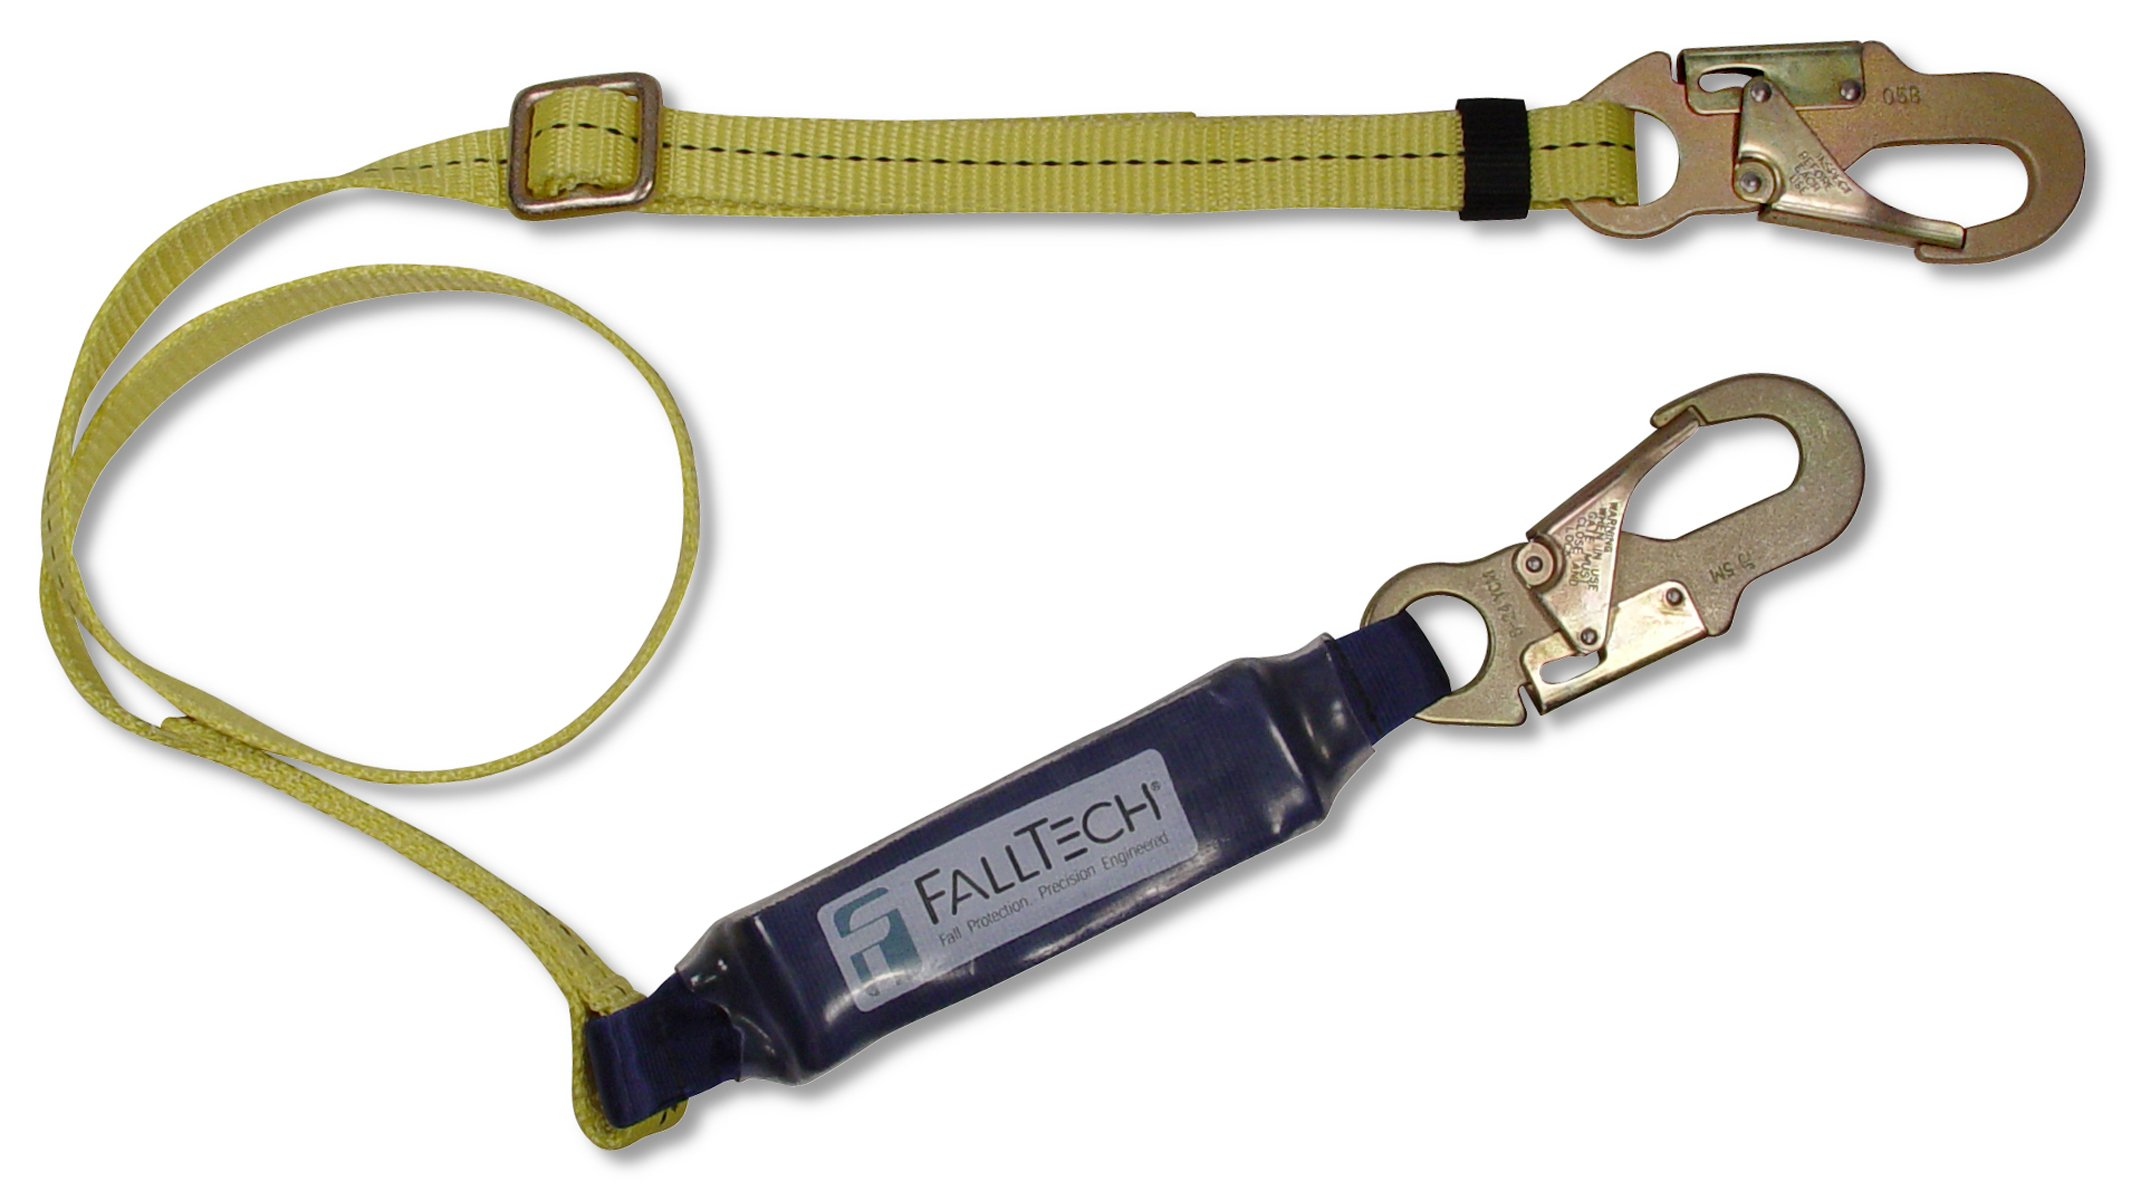 FallTech 8257 ClearPack Adjustable 4.5-to-6-Foot Shock Absorbing Lanyard